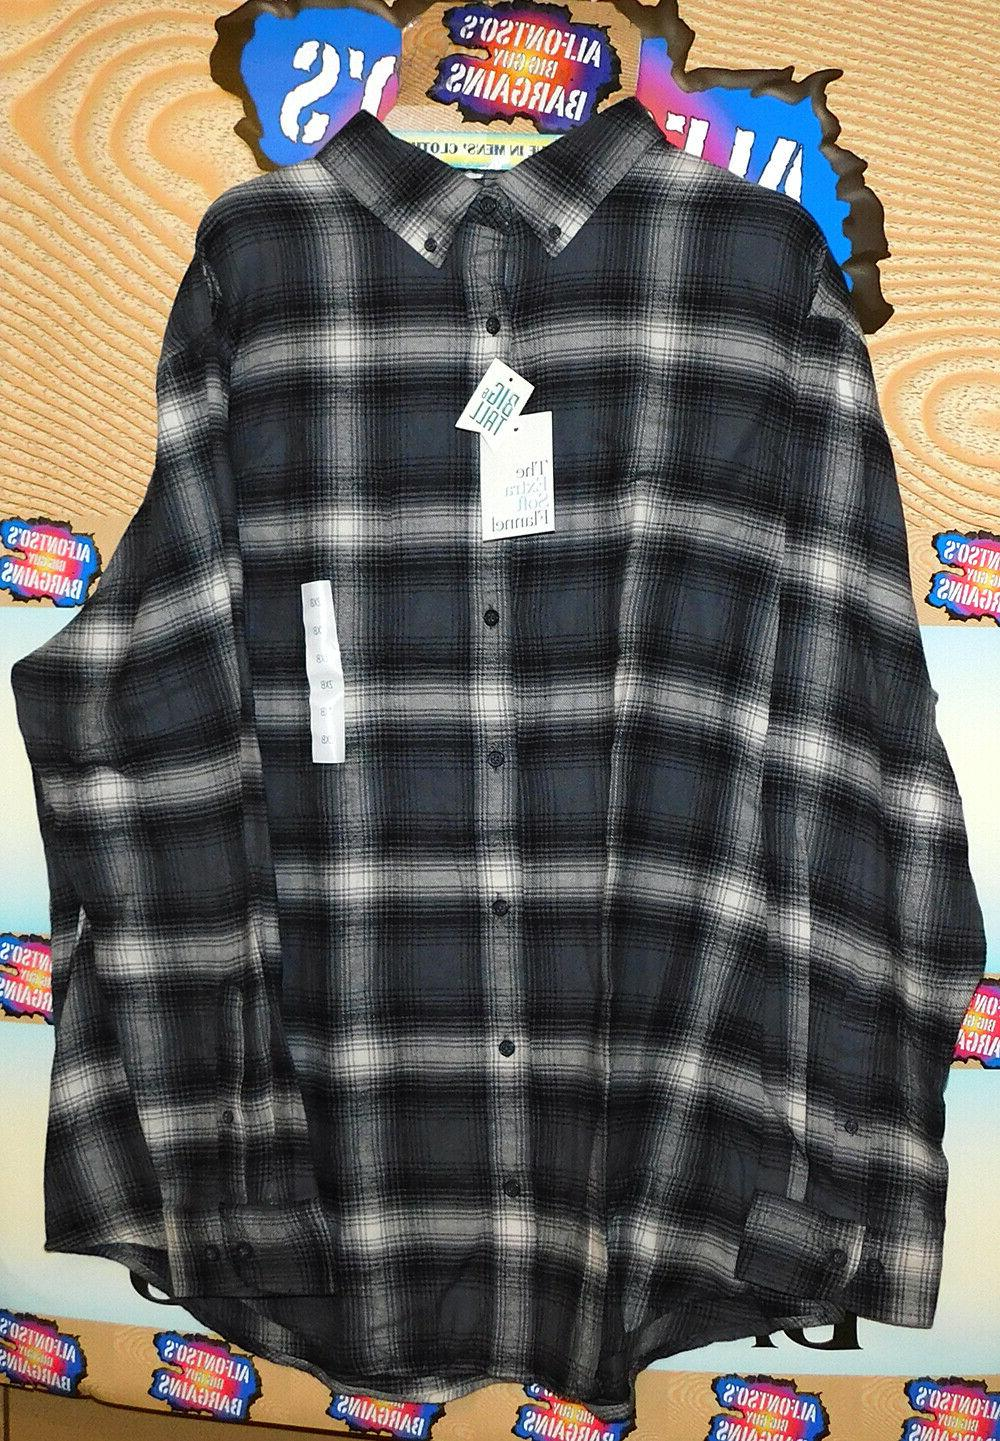 Mens Extra Flannel Reg$13.89 $15.89 Shipping